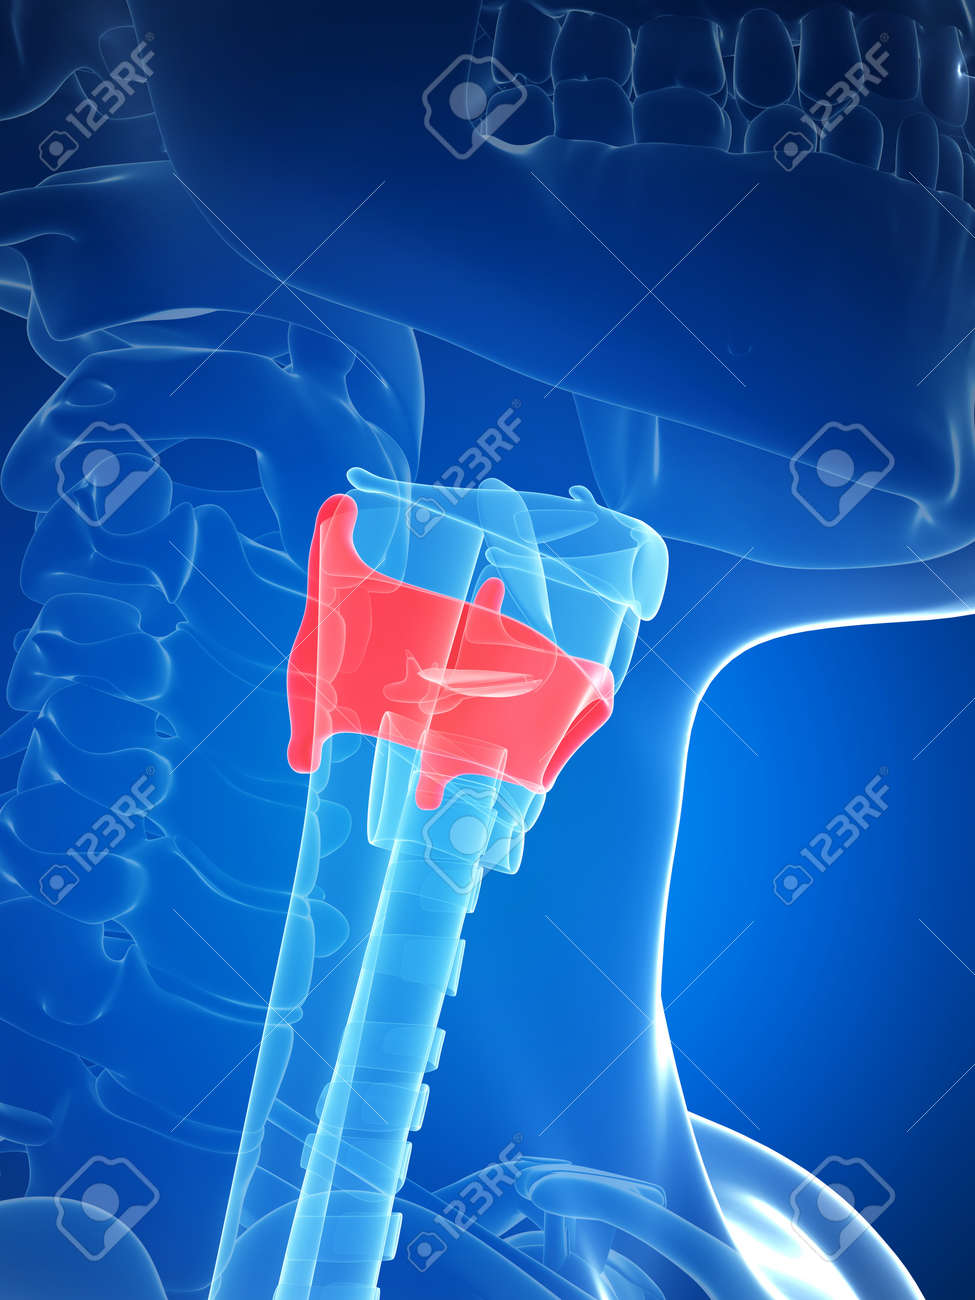 3d Rendered Illustration Of The Larynx Anatomy - Thyroid Cartilage ...